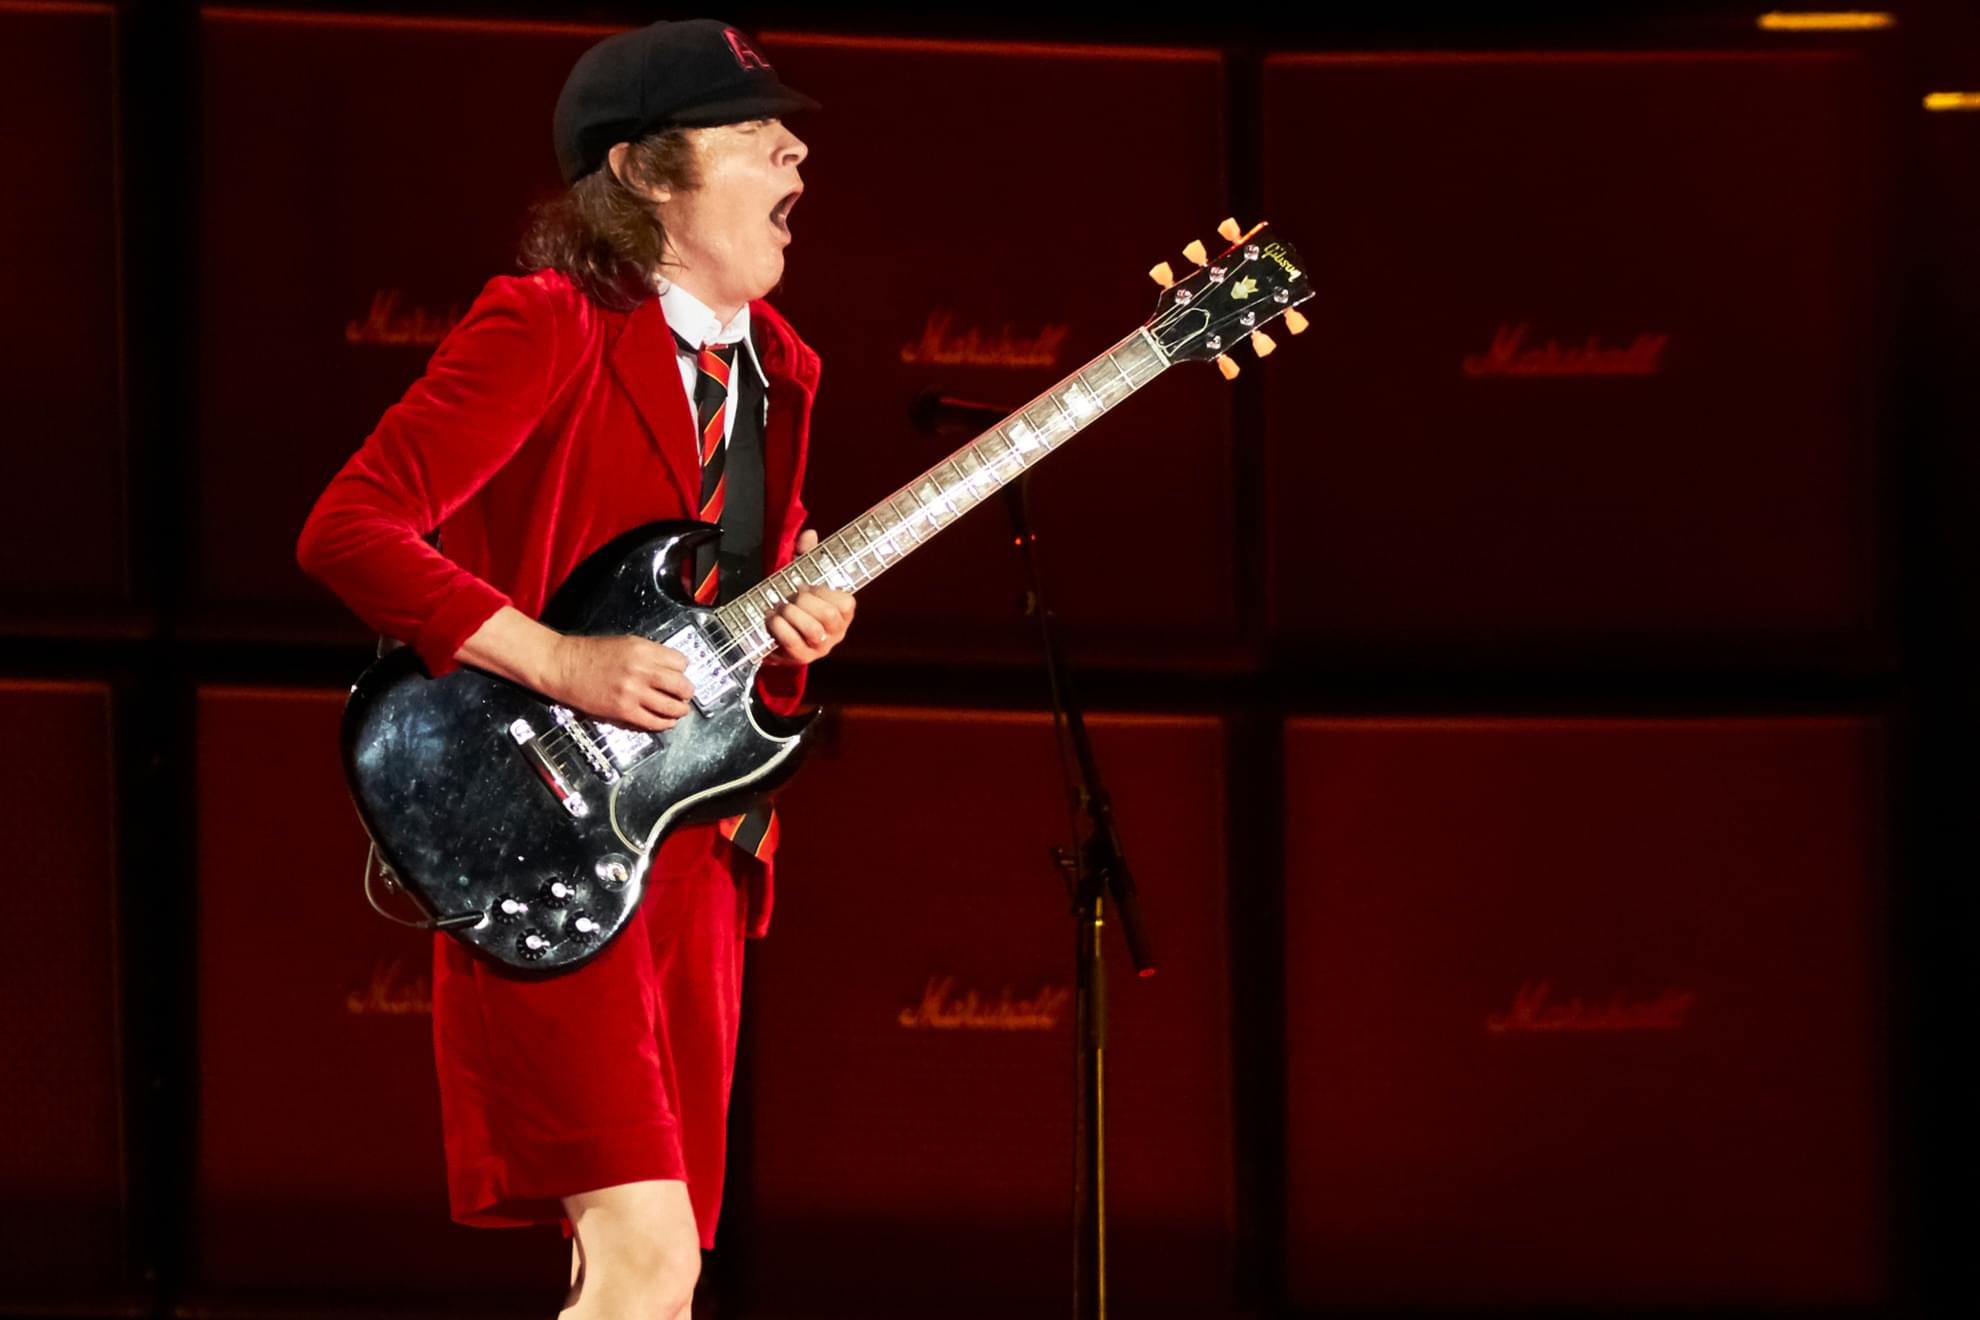 AC/DC – Shot In The Dark (Official Music Video)